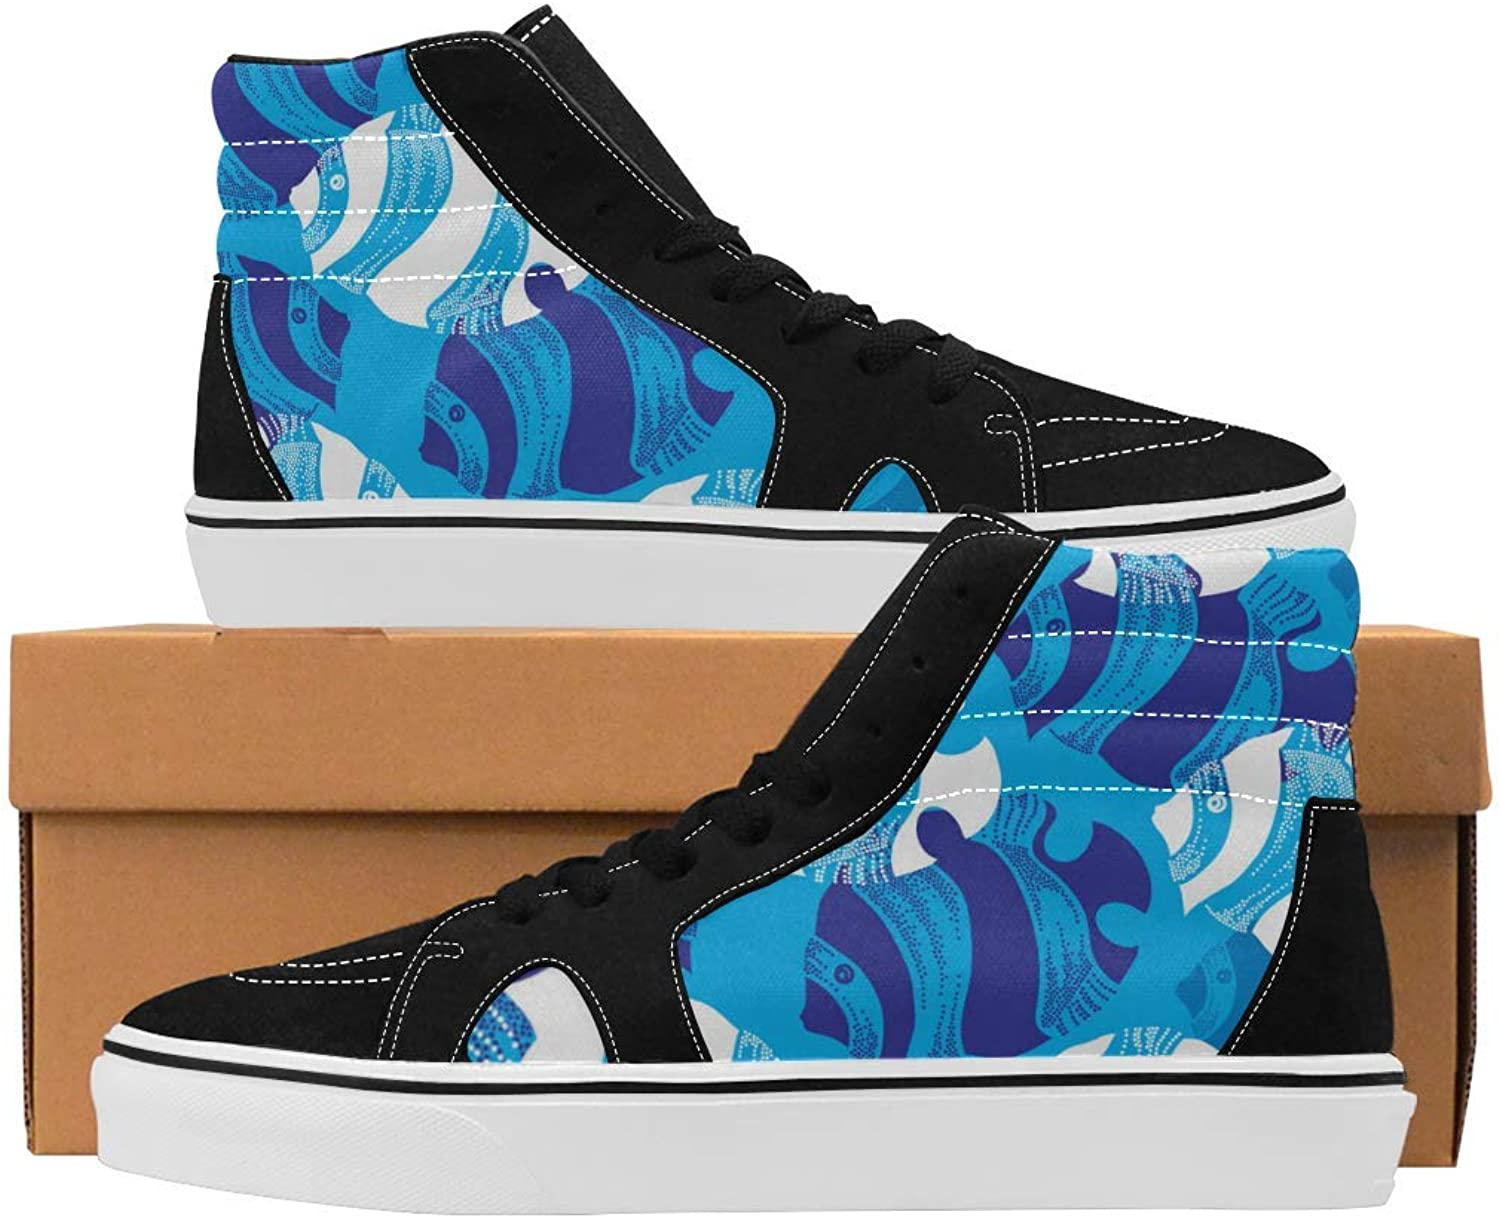 Women's High Top Canvas shoes Trainers Sneakers Casual Comfort shoes bluee Fish Prints